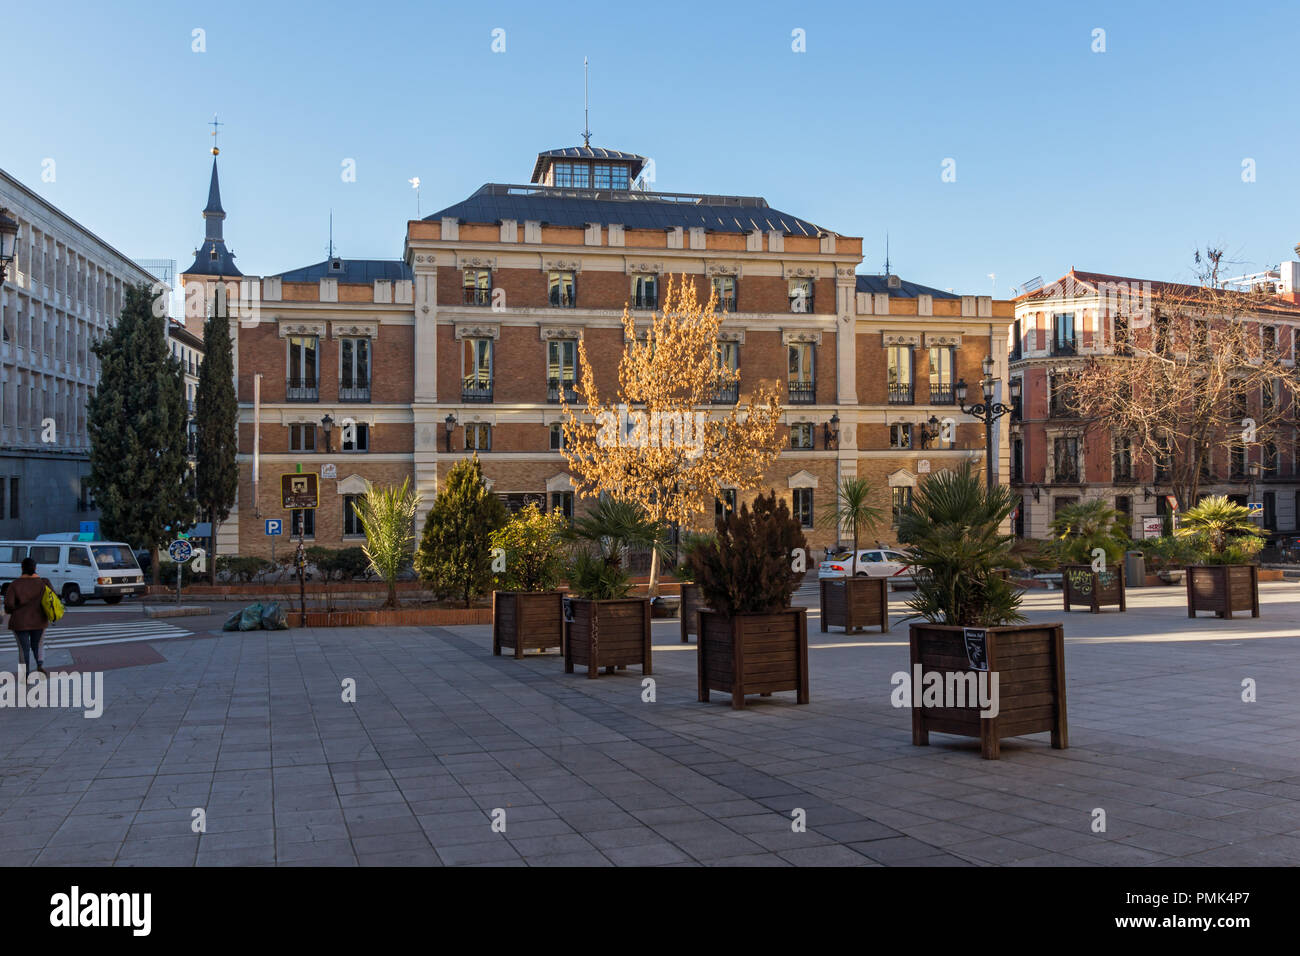 MADRID, SPAIN - JANUARY 22, 2018:  Sunrise view of Plaza de San Martin in Madrid, Spain - Stock Image